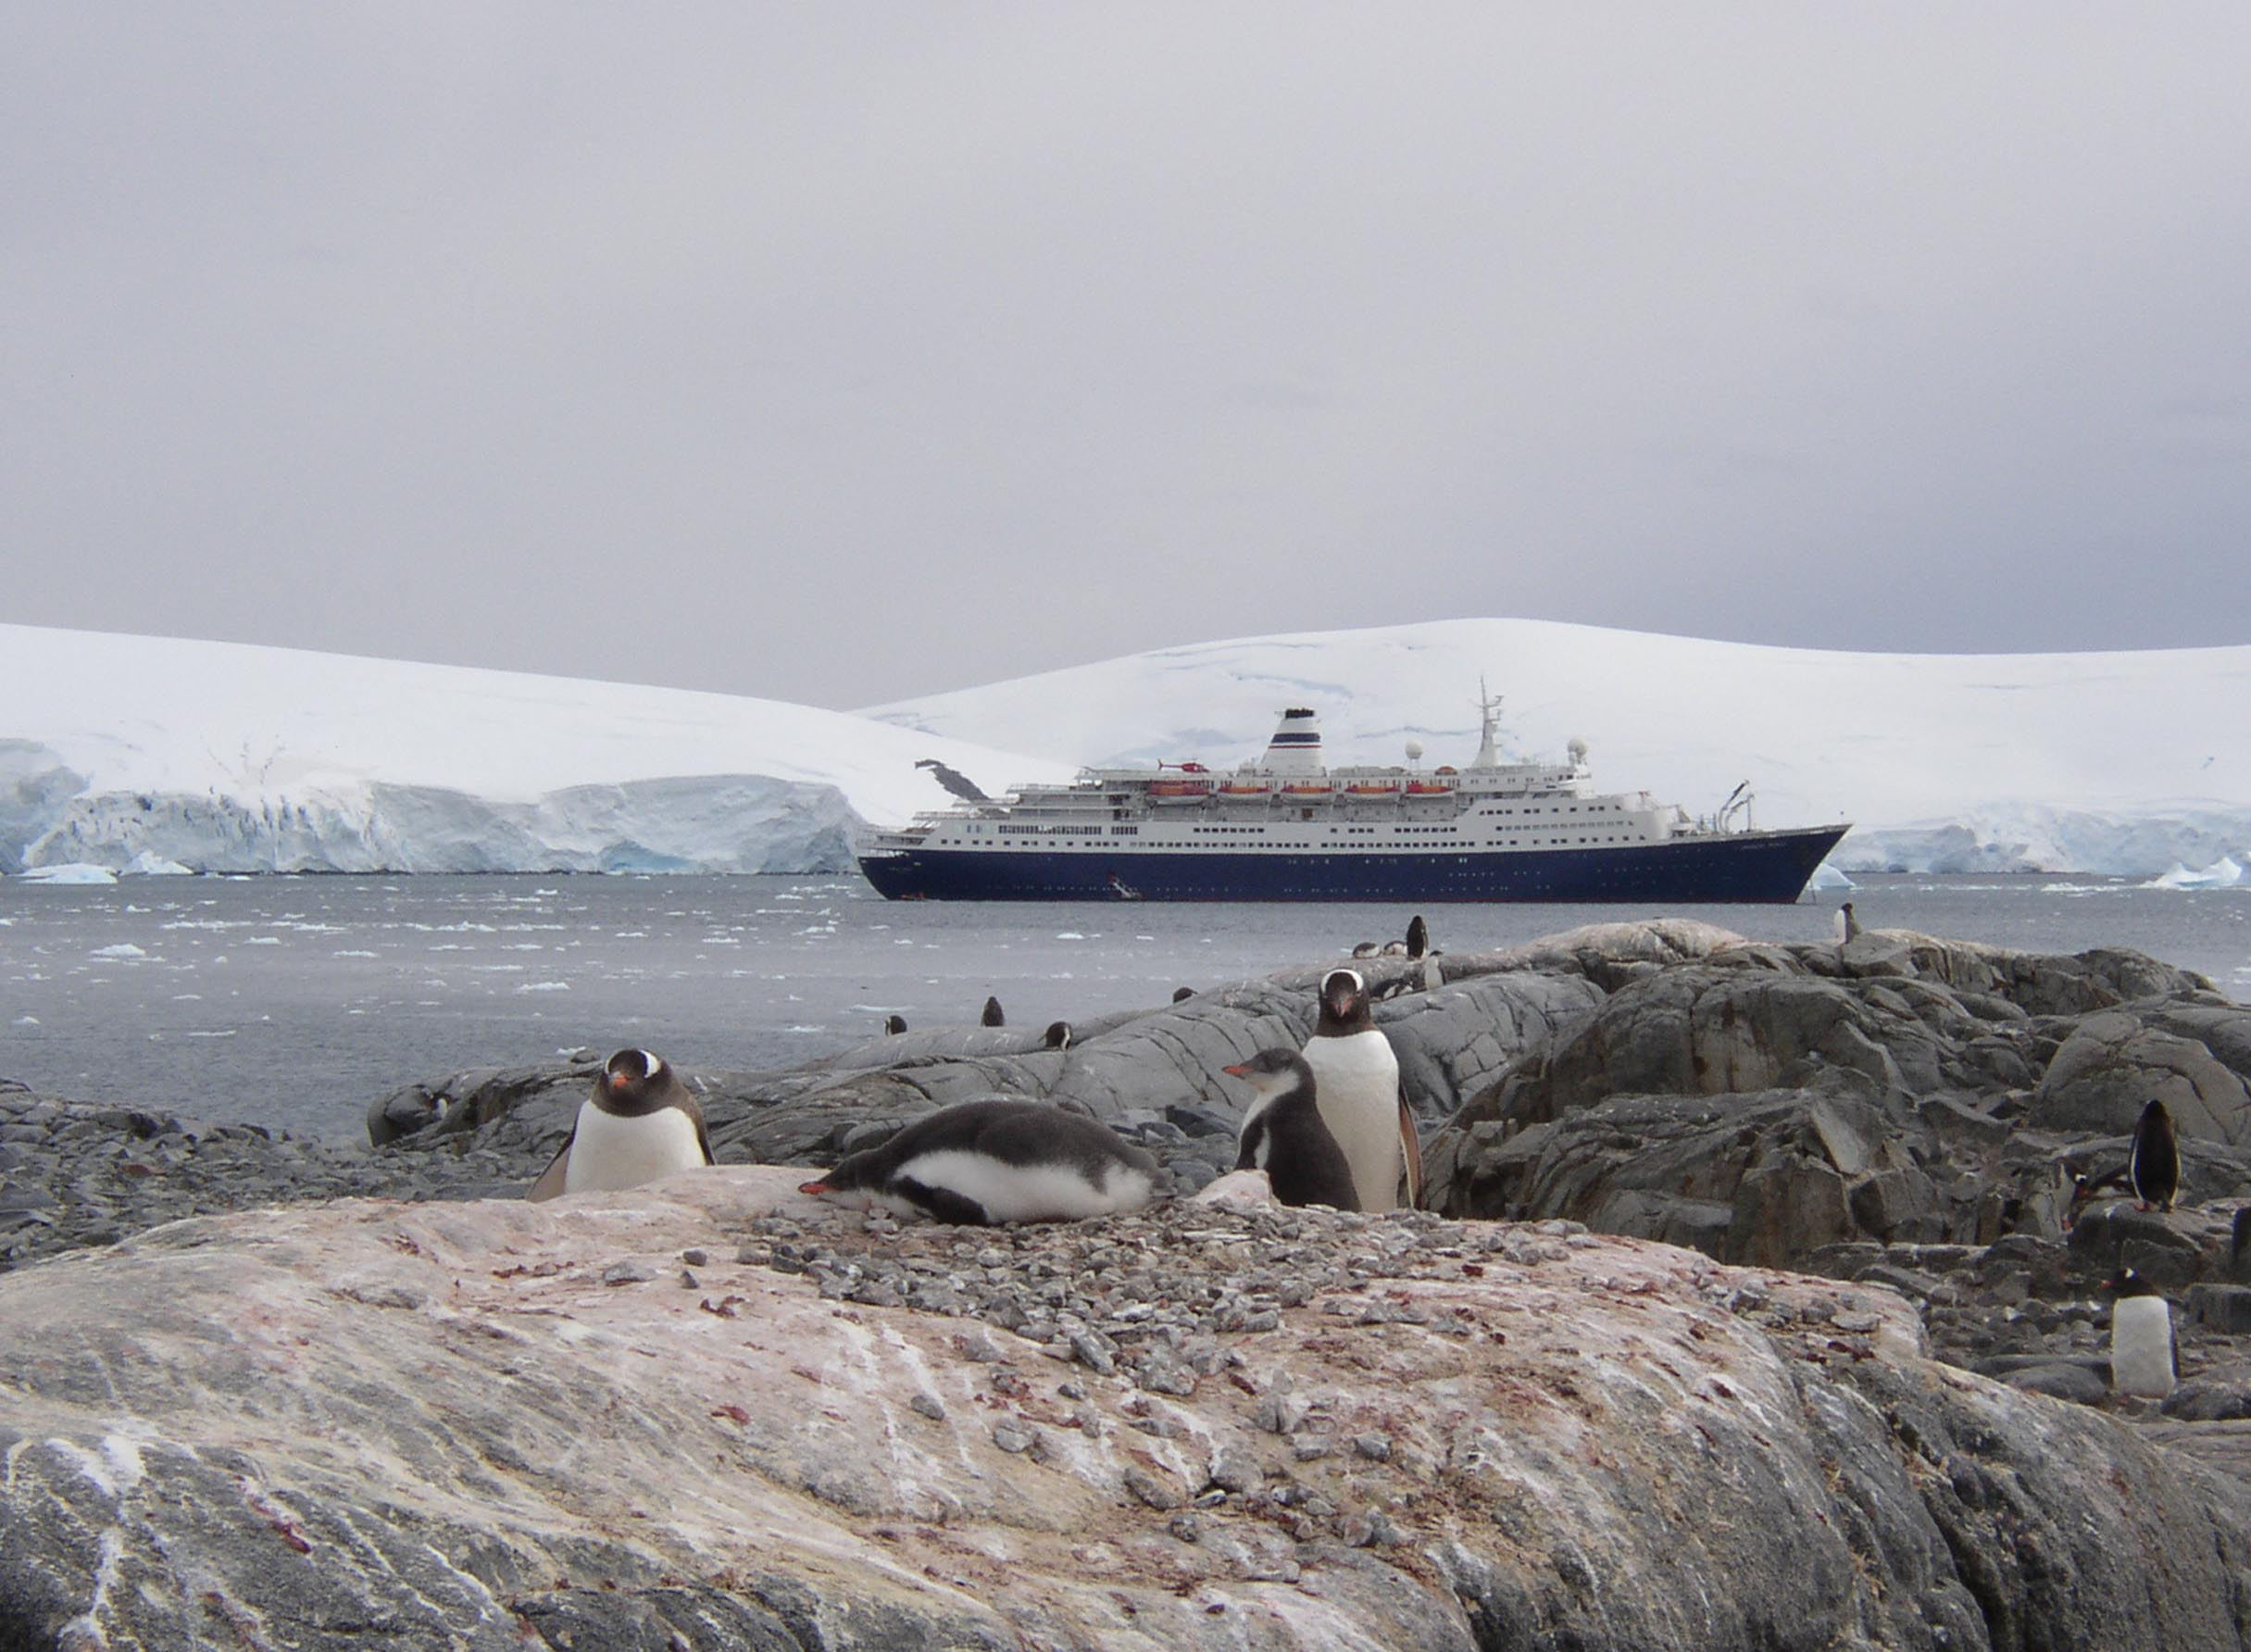 Ship anchored off a rocky coast with penguins